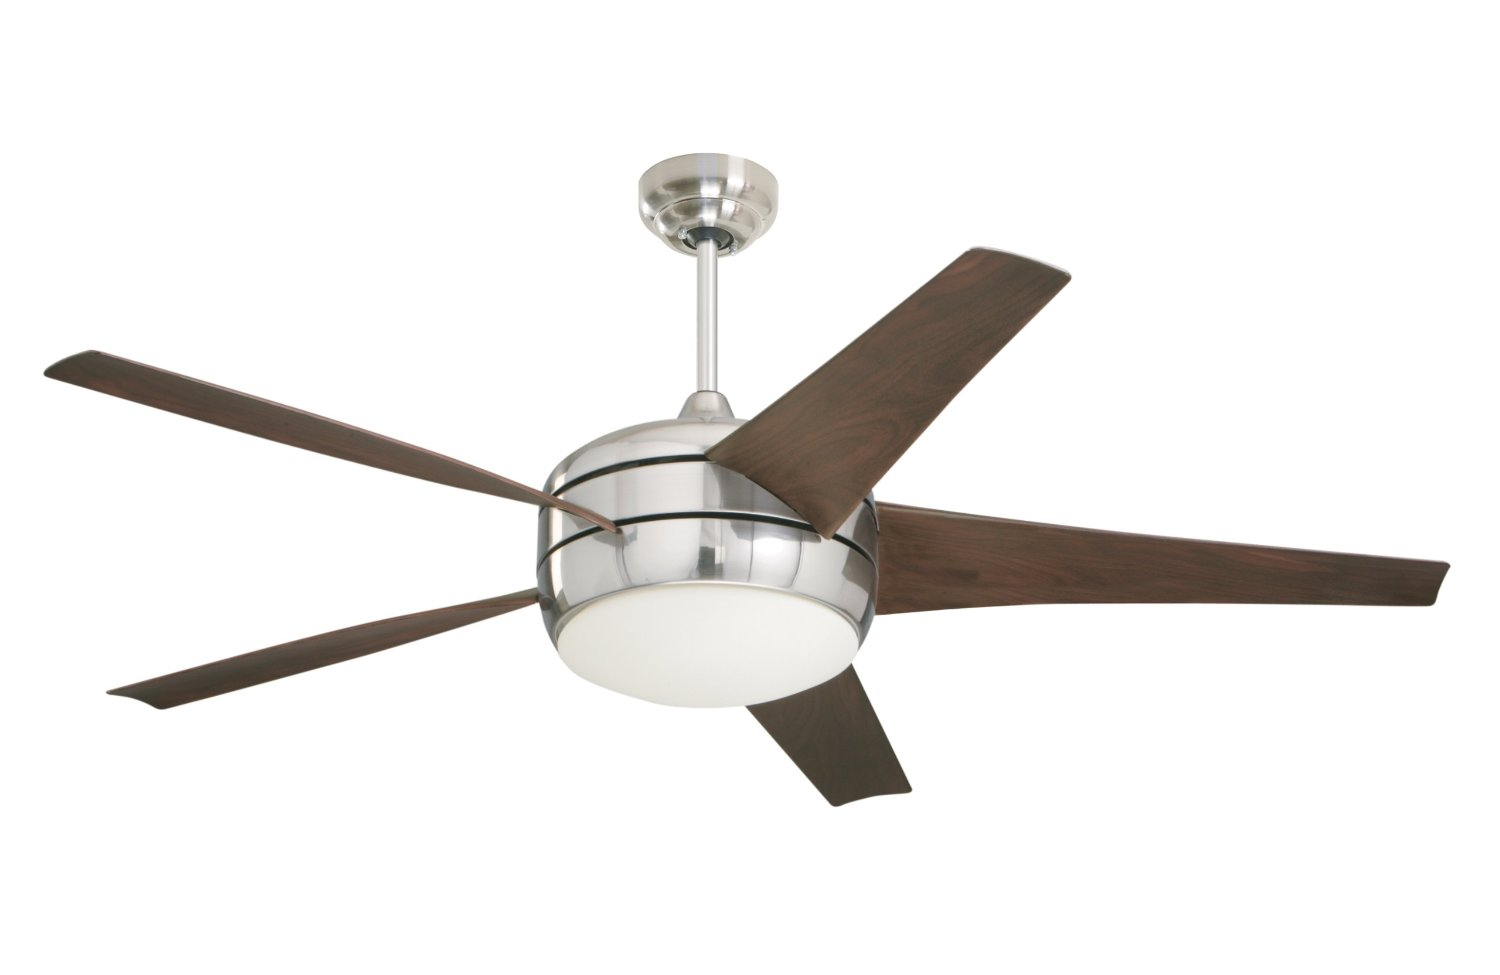 hight resolution of installing a ceiling fan with light wiring